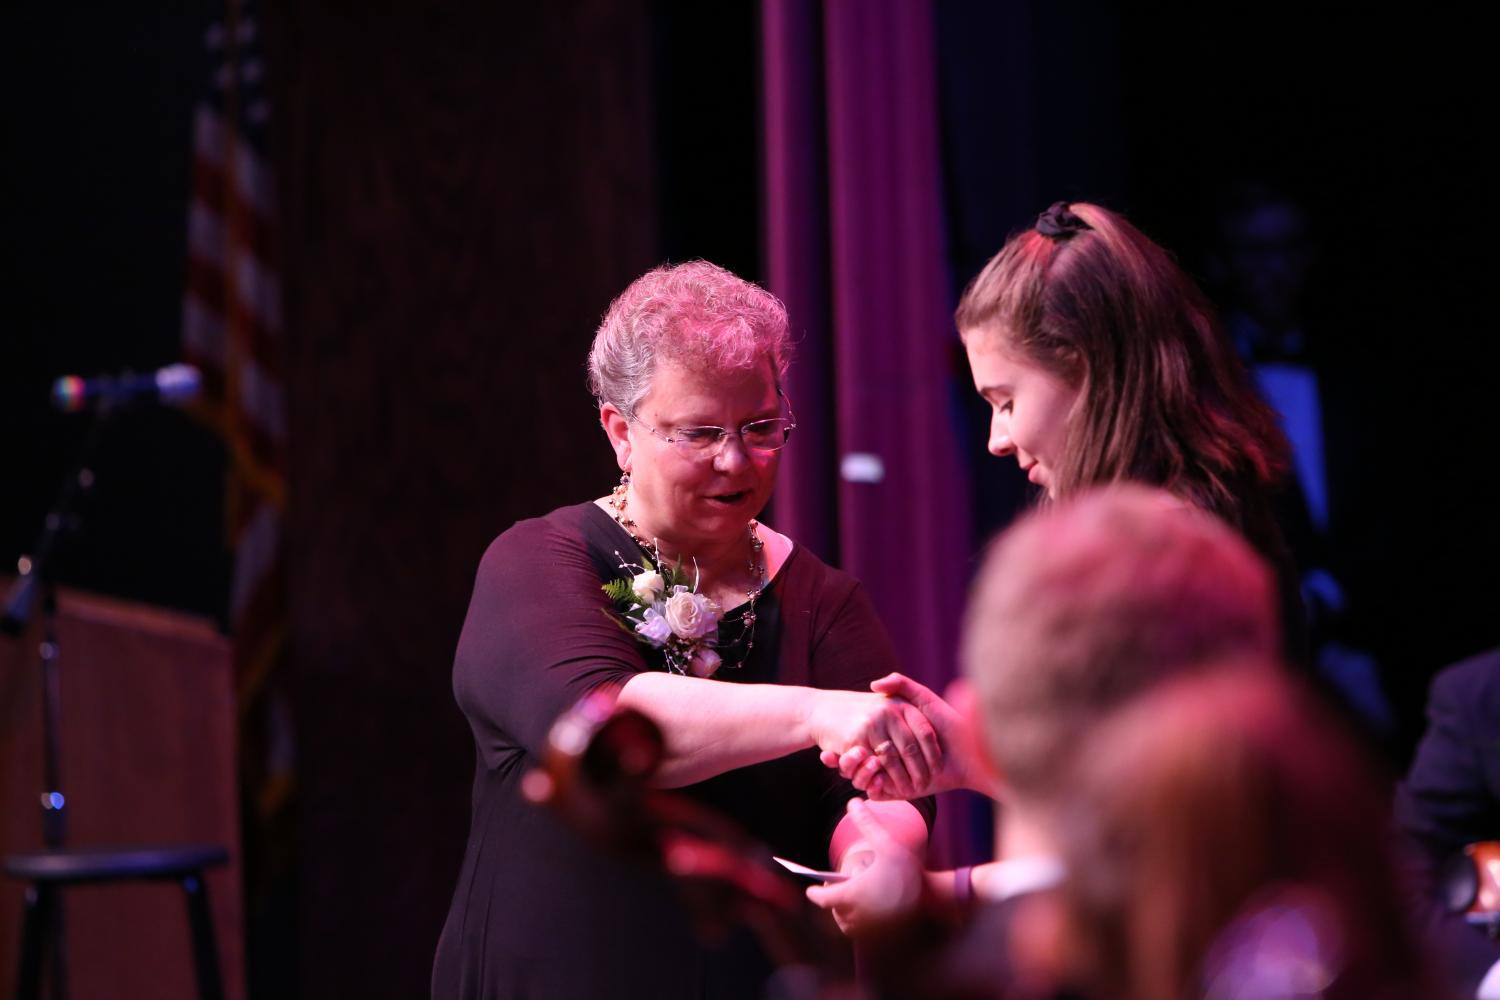 Patti Fleer, orchestra teacher, greets a student at the spring orchestra concert, April 27.